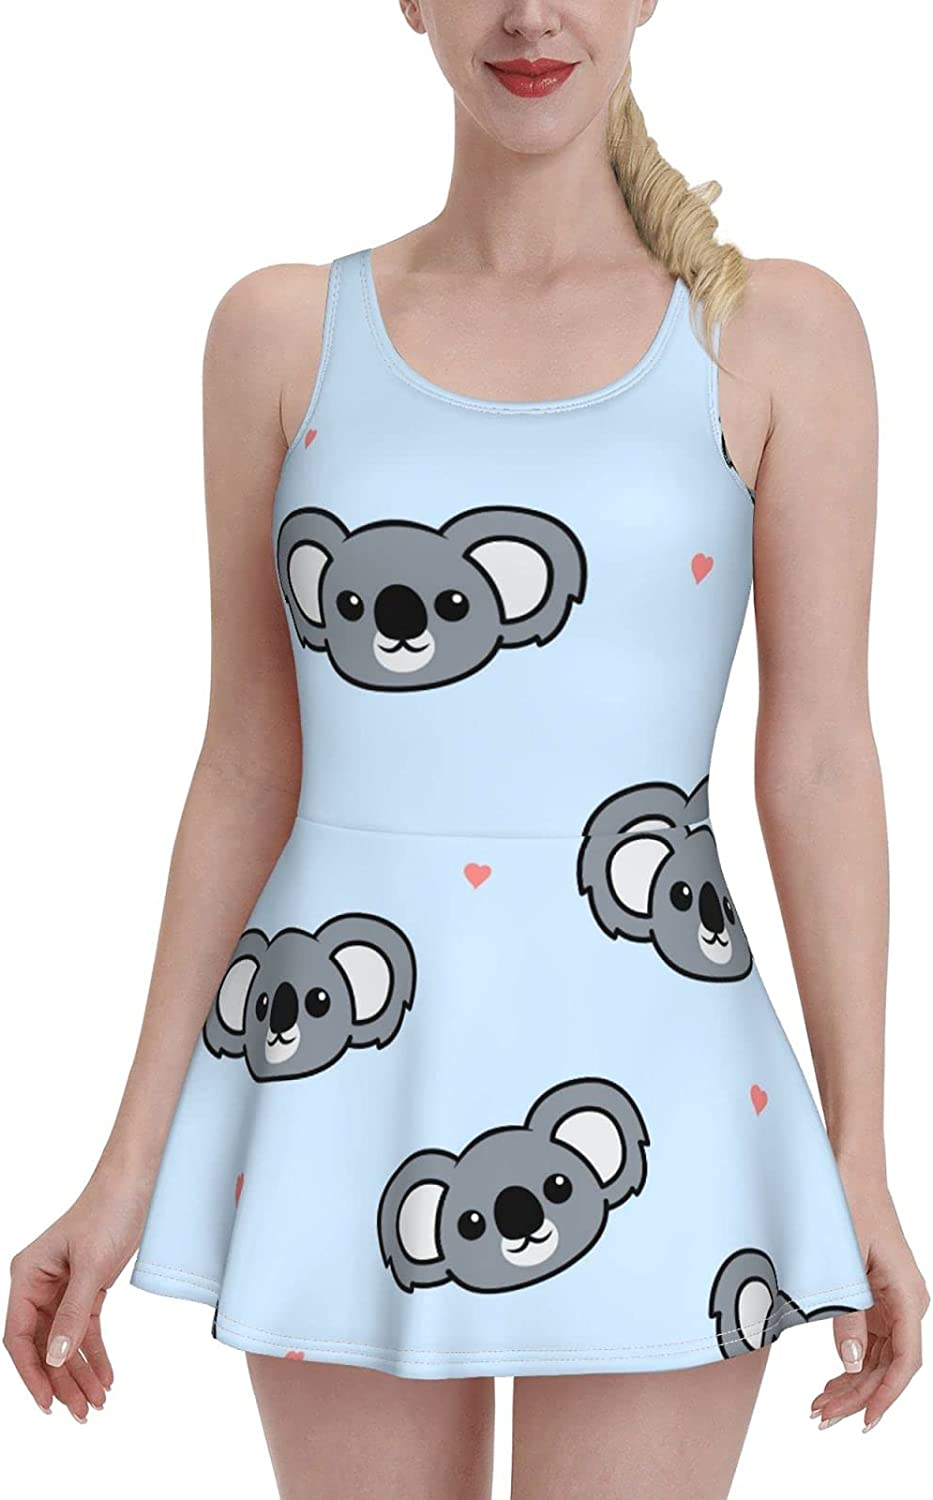 Cute Max 89% OFF Koala Ladies Ruffled Al sold out. One-Piece with Str Adjustable Swimsuit